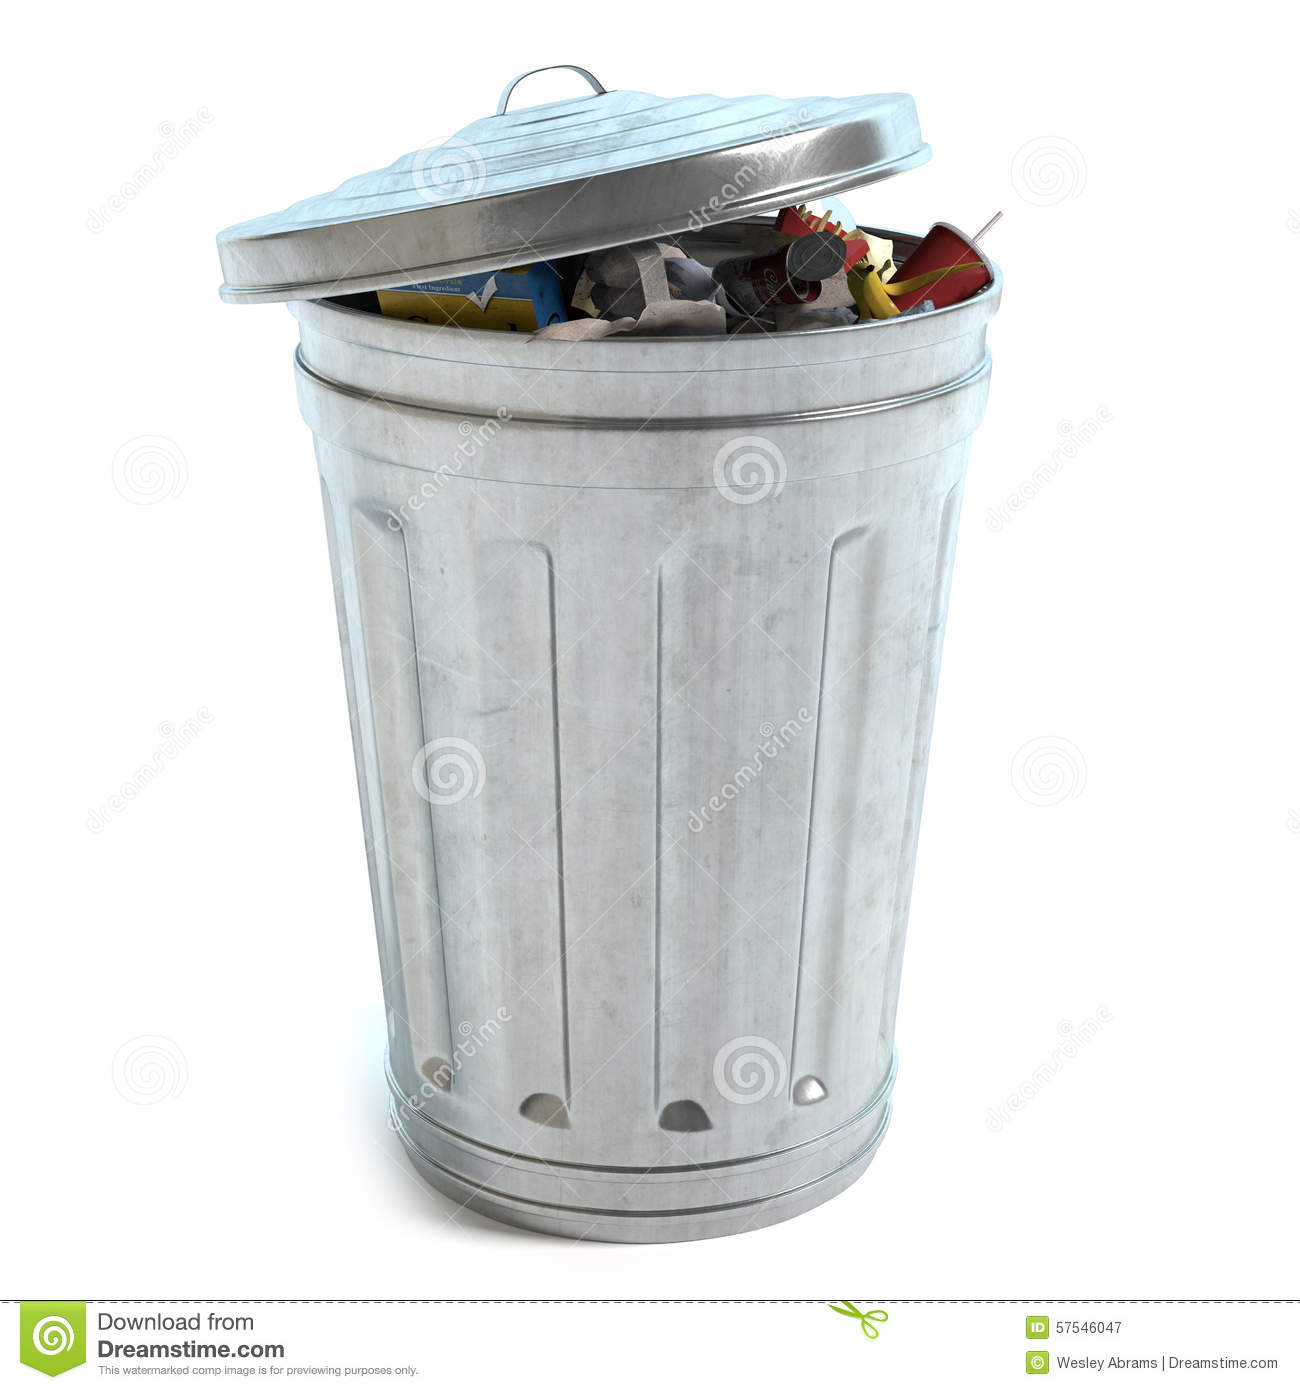 Garbage Can Full Ot Trash Stock Illustration - Image: 57546047